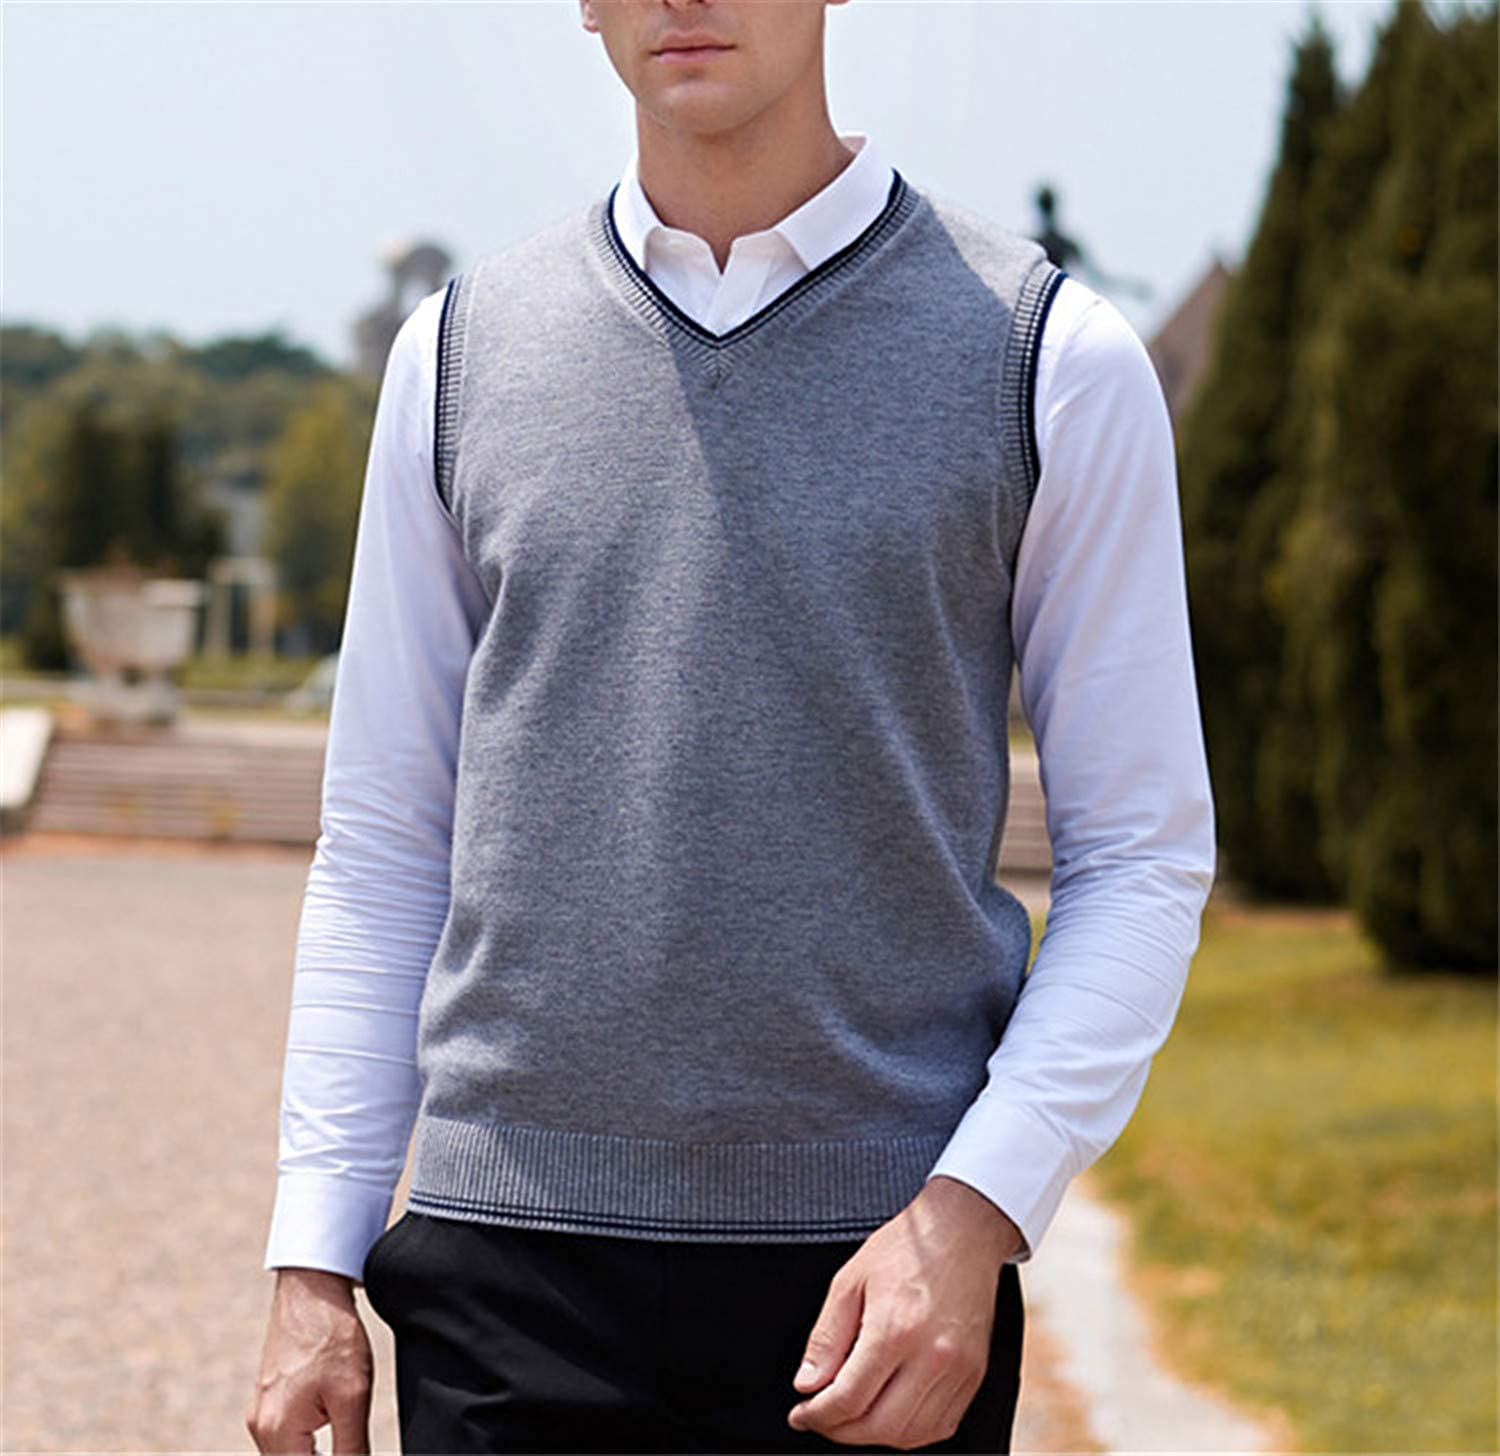 Classic V-Neck Collar Male Sweater Vest Knitwear Silm Fit Casual Pullover Vests for Men